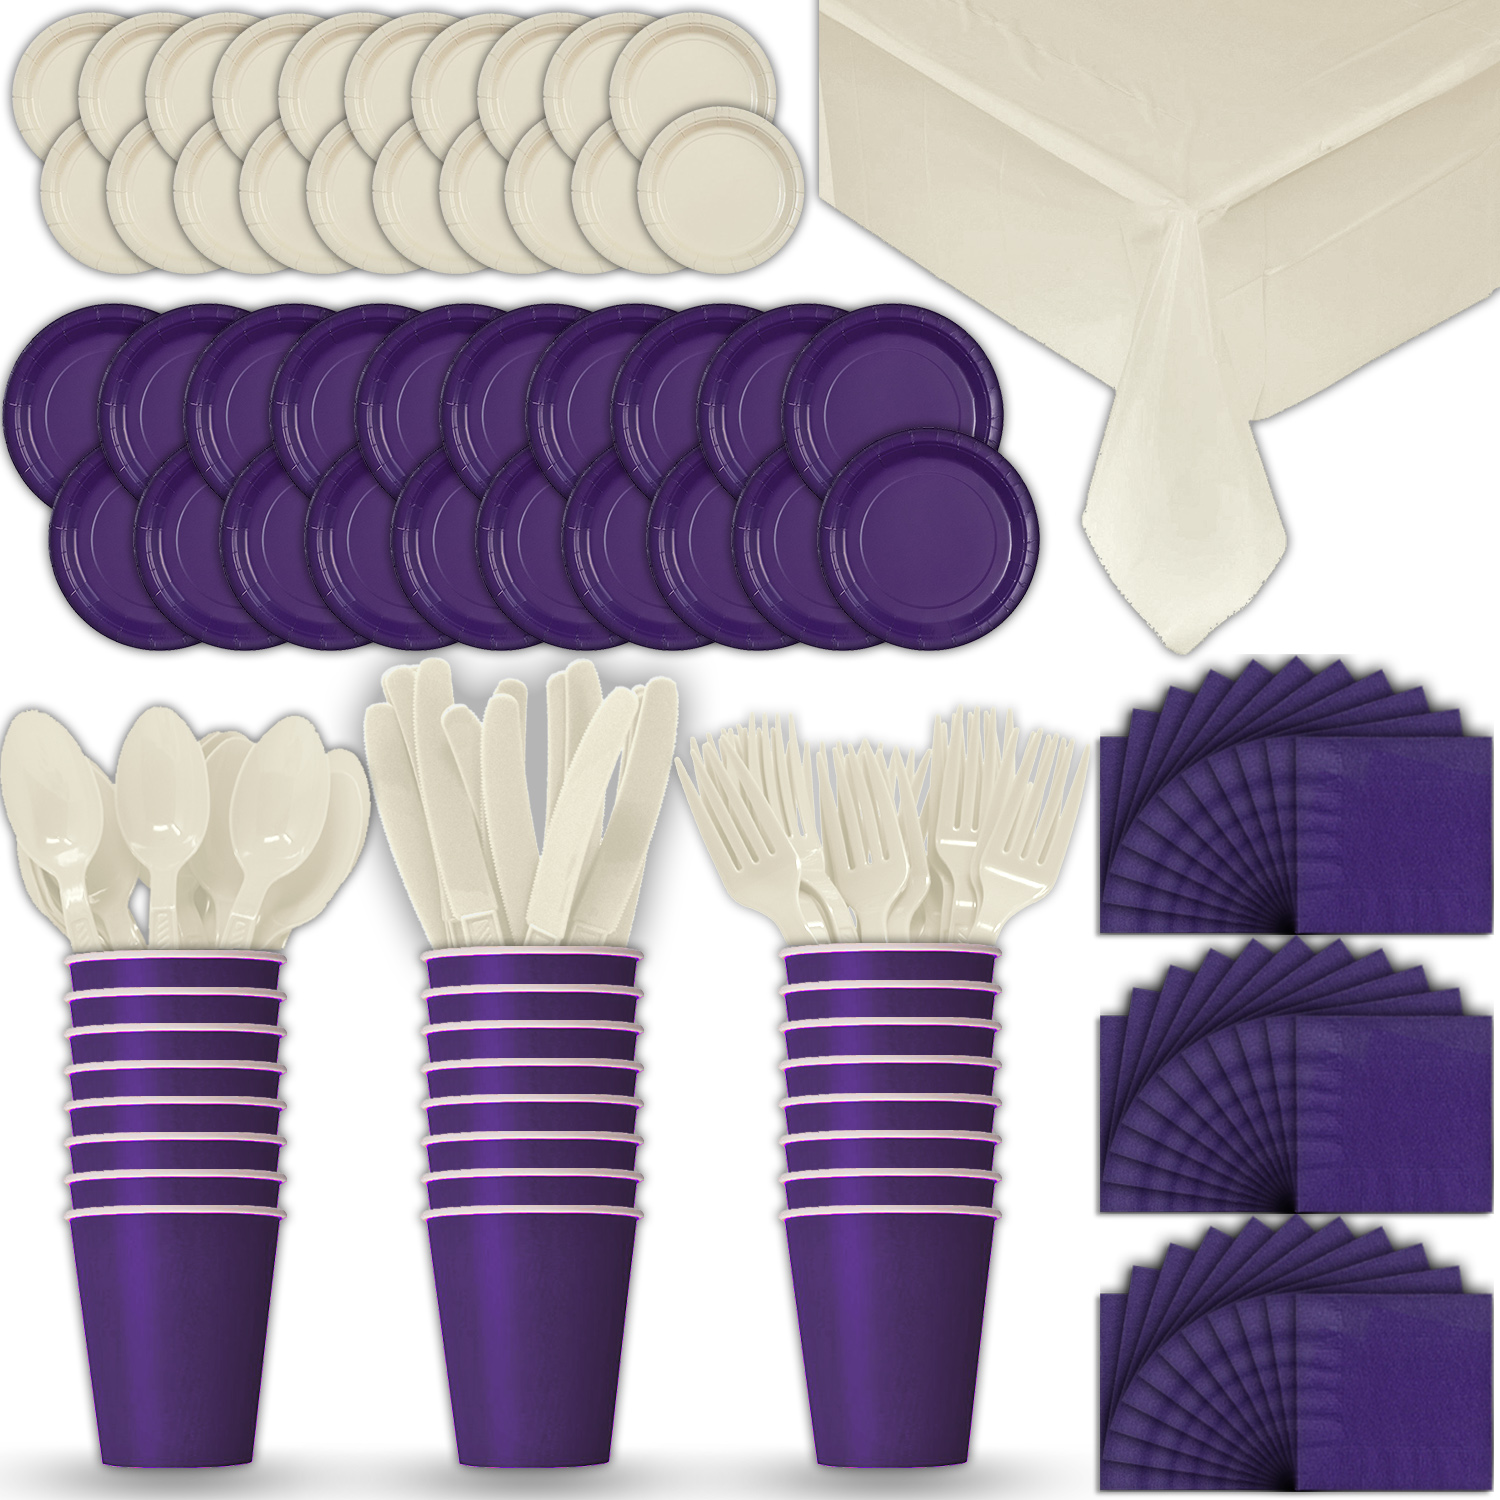 Paper Tableware Set for 24 - Purple & Cream - Dinner and Dessert Plates, Cups, Napkins, Cutlery (Spoons, Forks, Knives), and Tablecloths - Full Two-Tone Party Supplies Pack